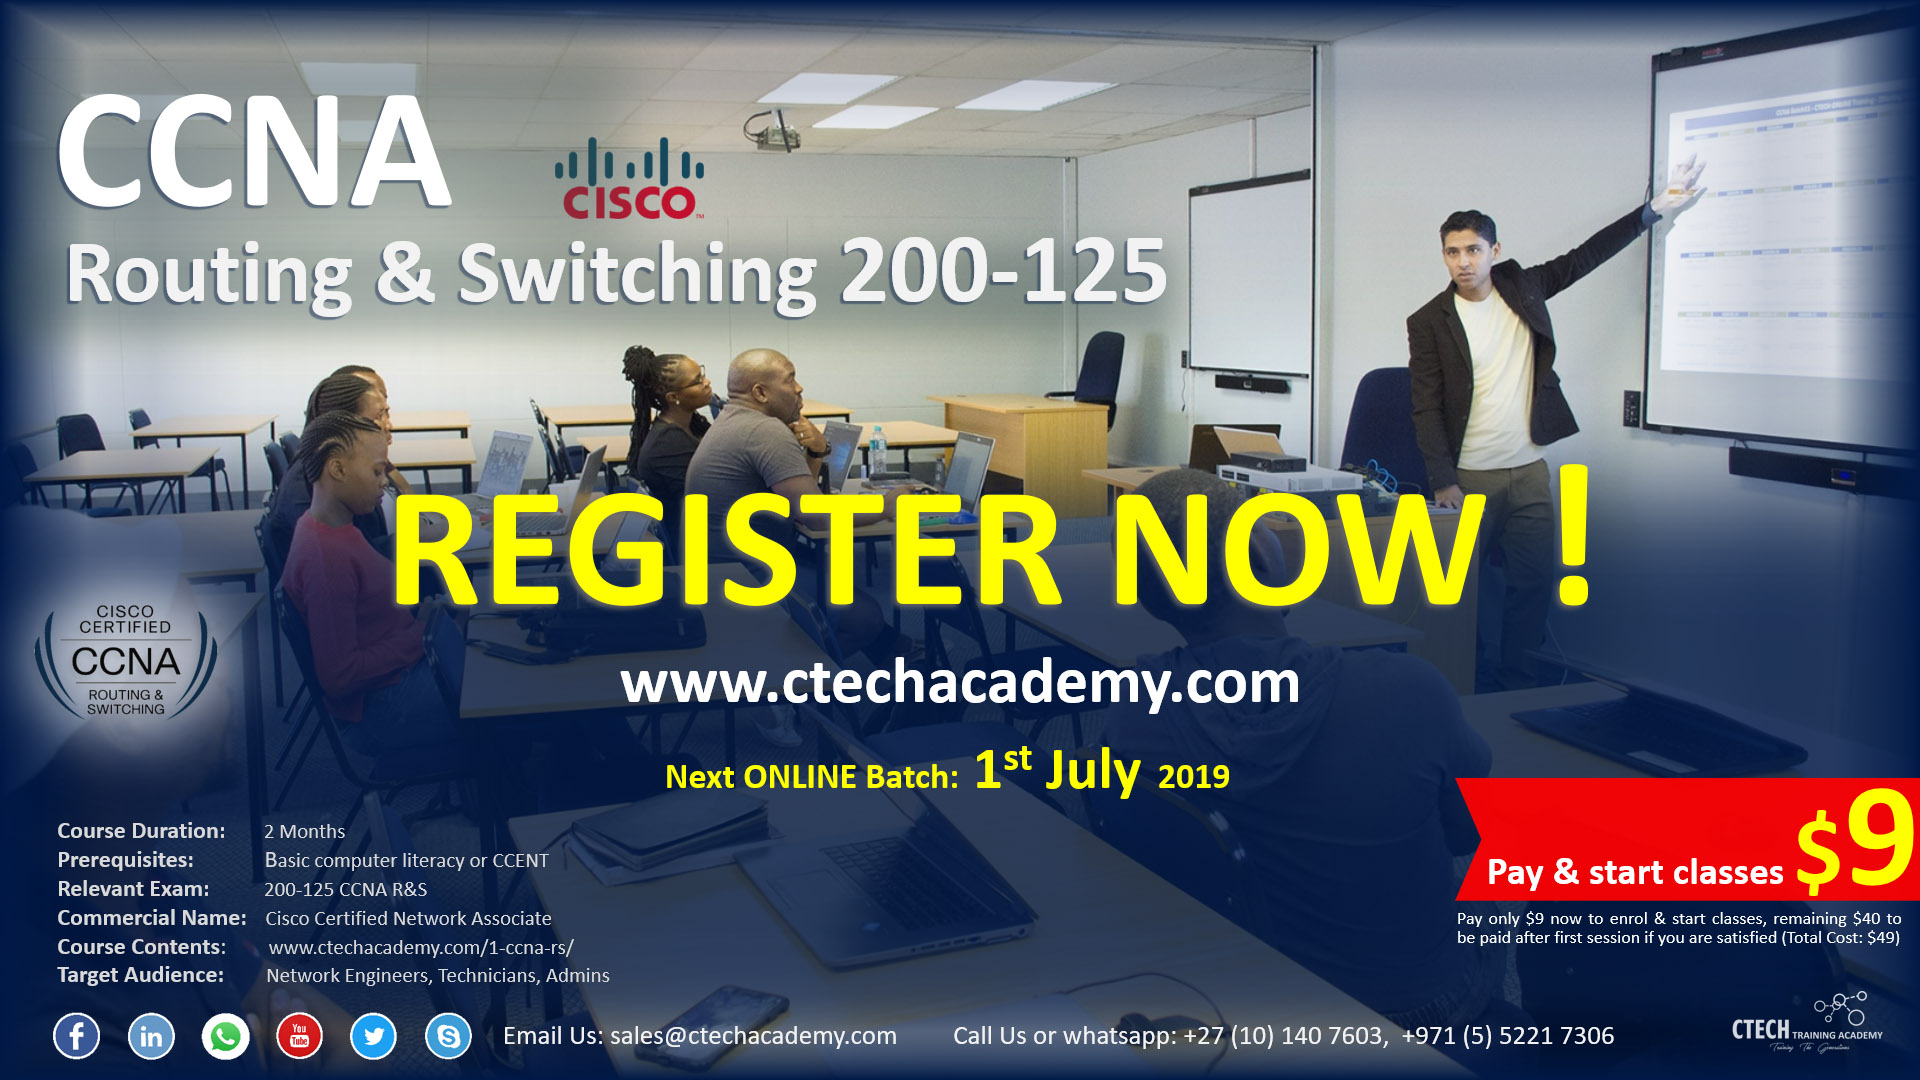 CCNA Routing